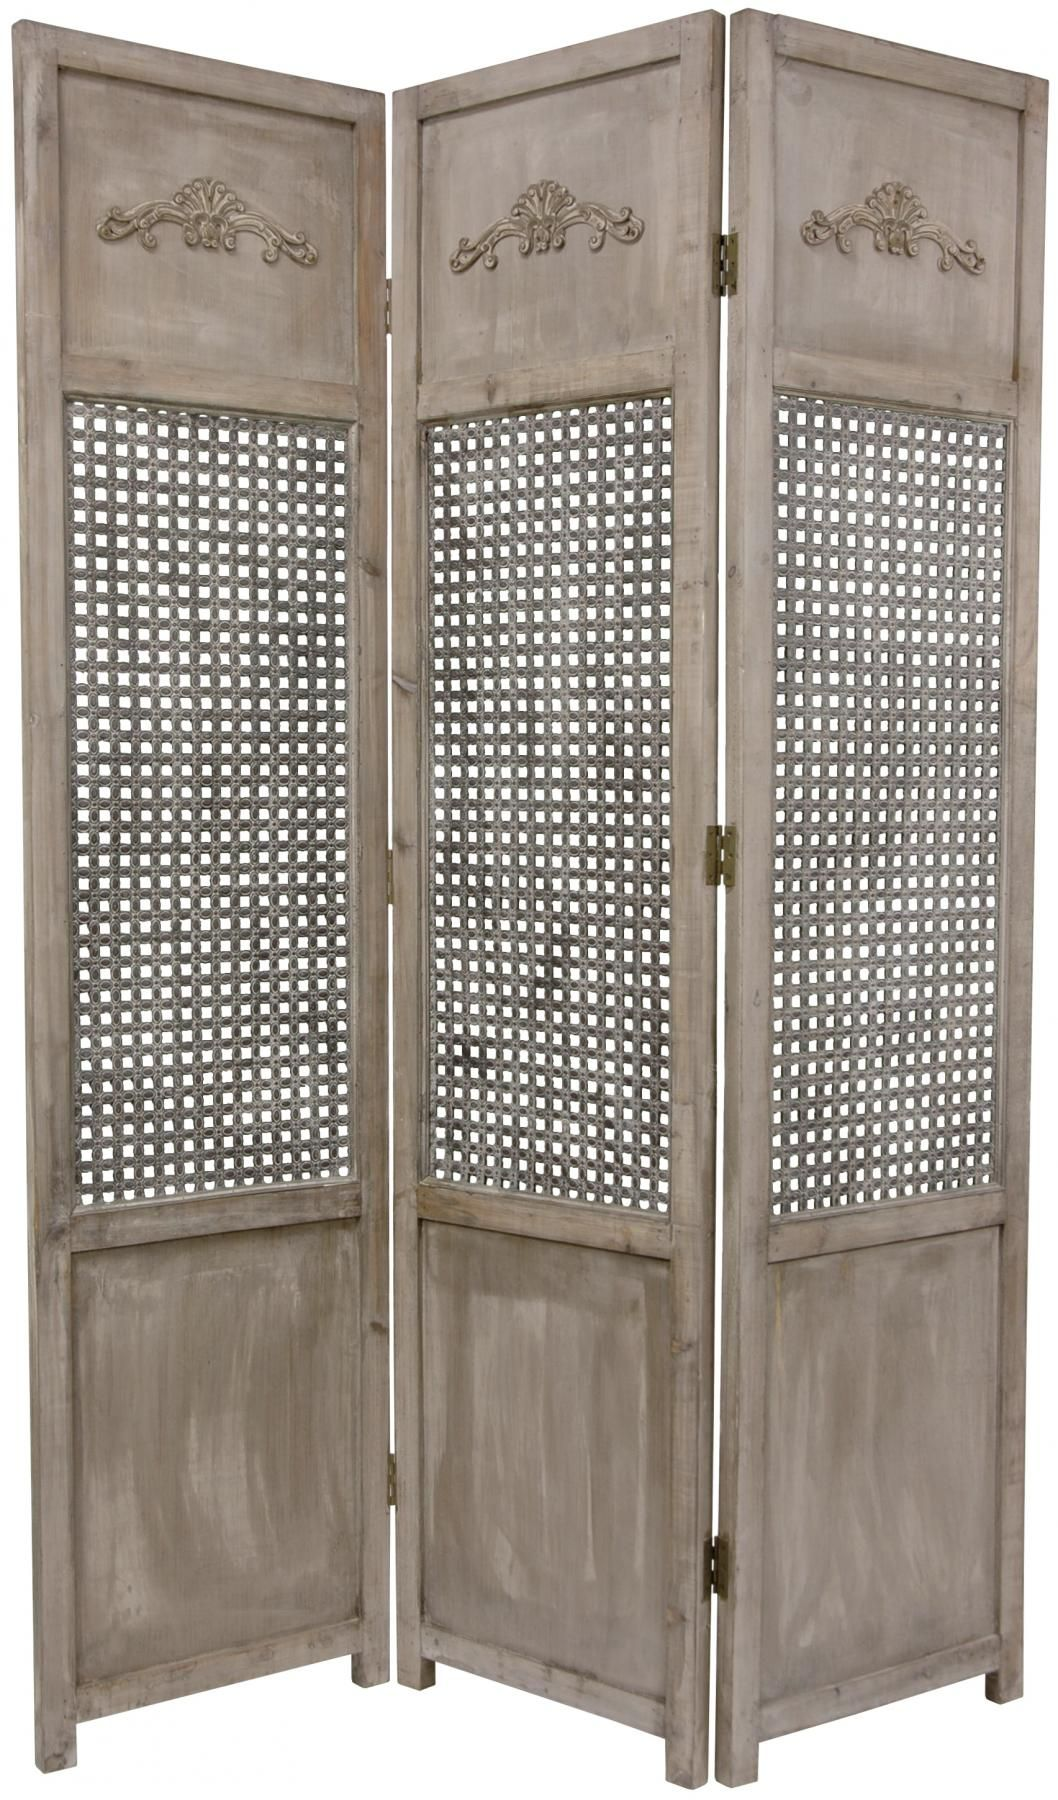 6 Ft Tall Open Mesh Room Divider Fabric Room Dividers Room